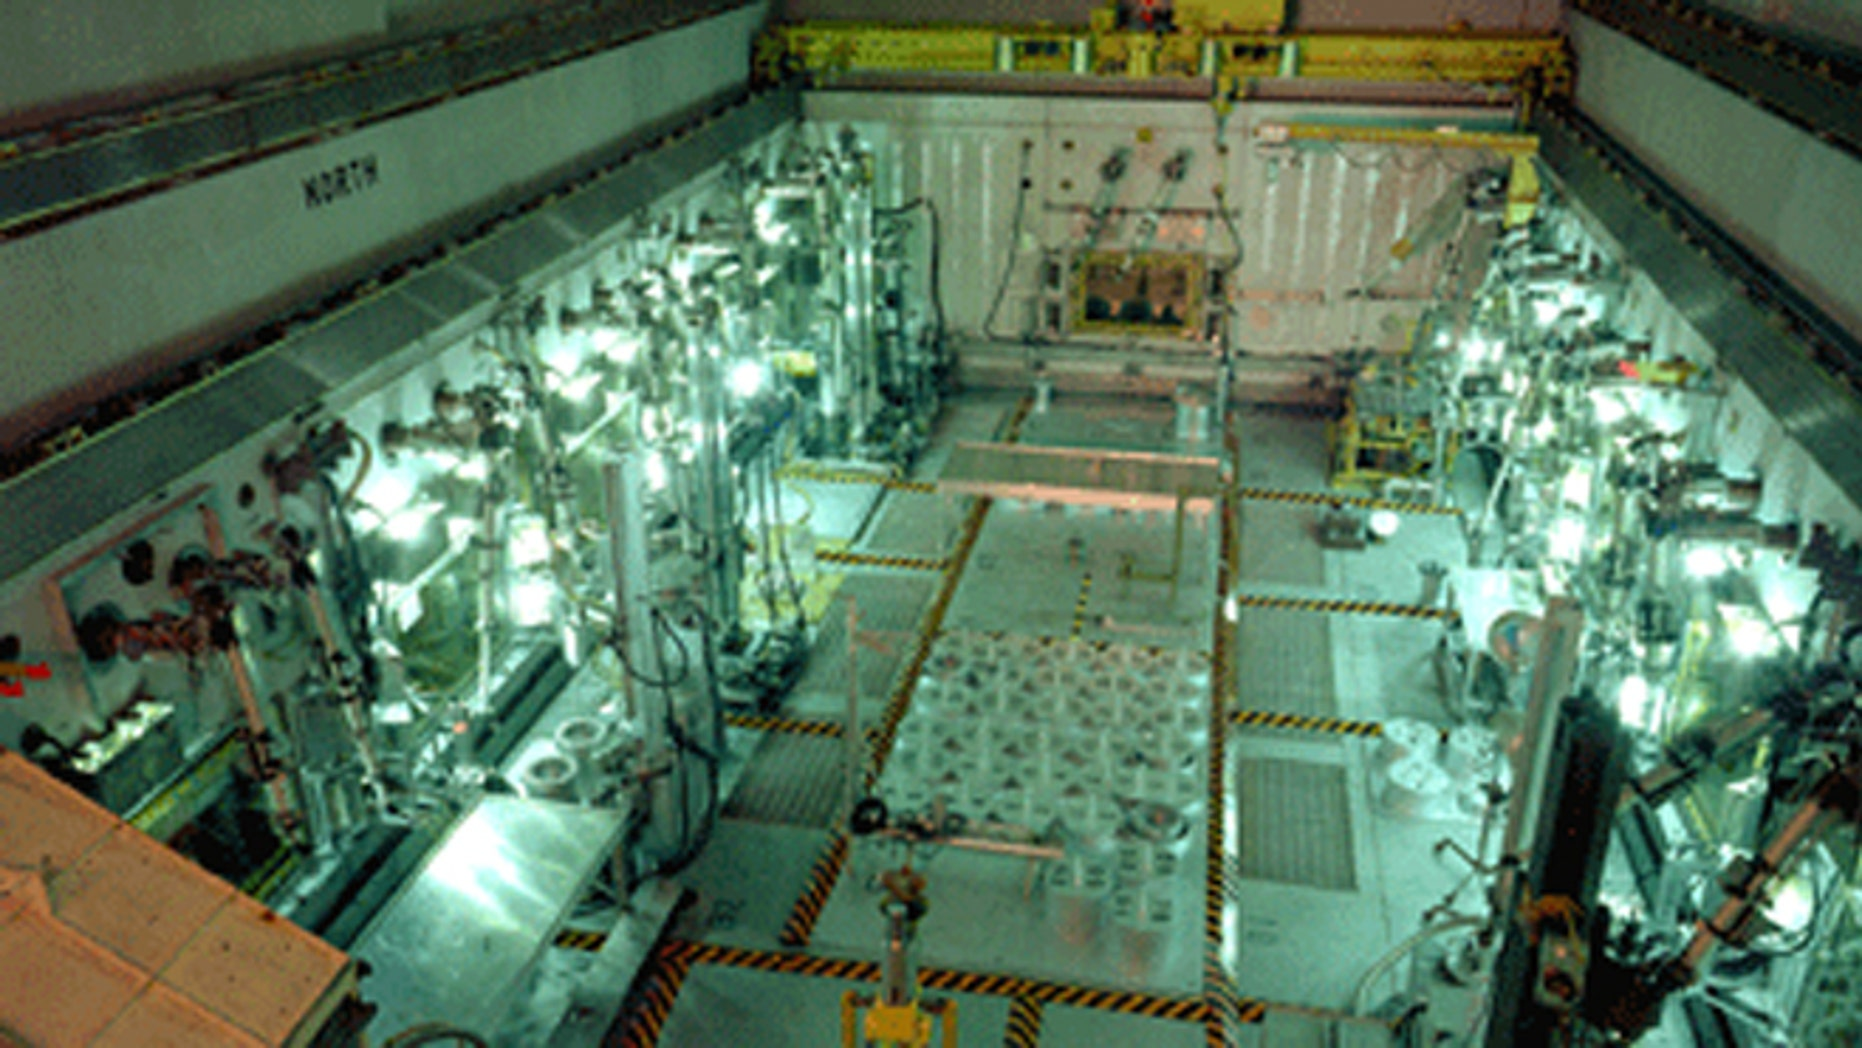 Shown here is a facility at the Idaho National Laboratory.